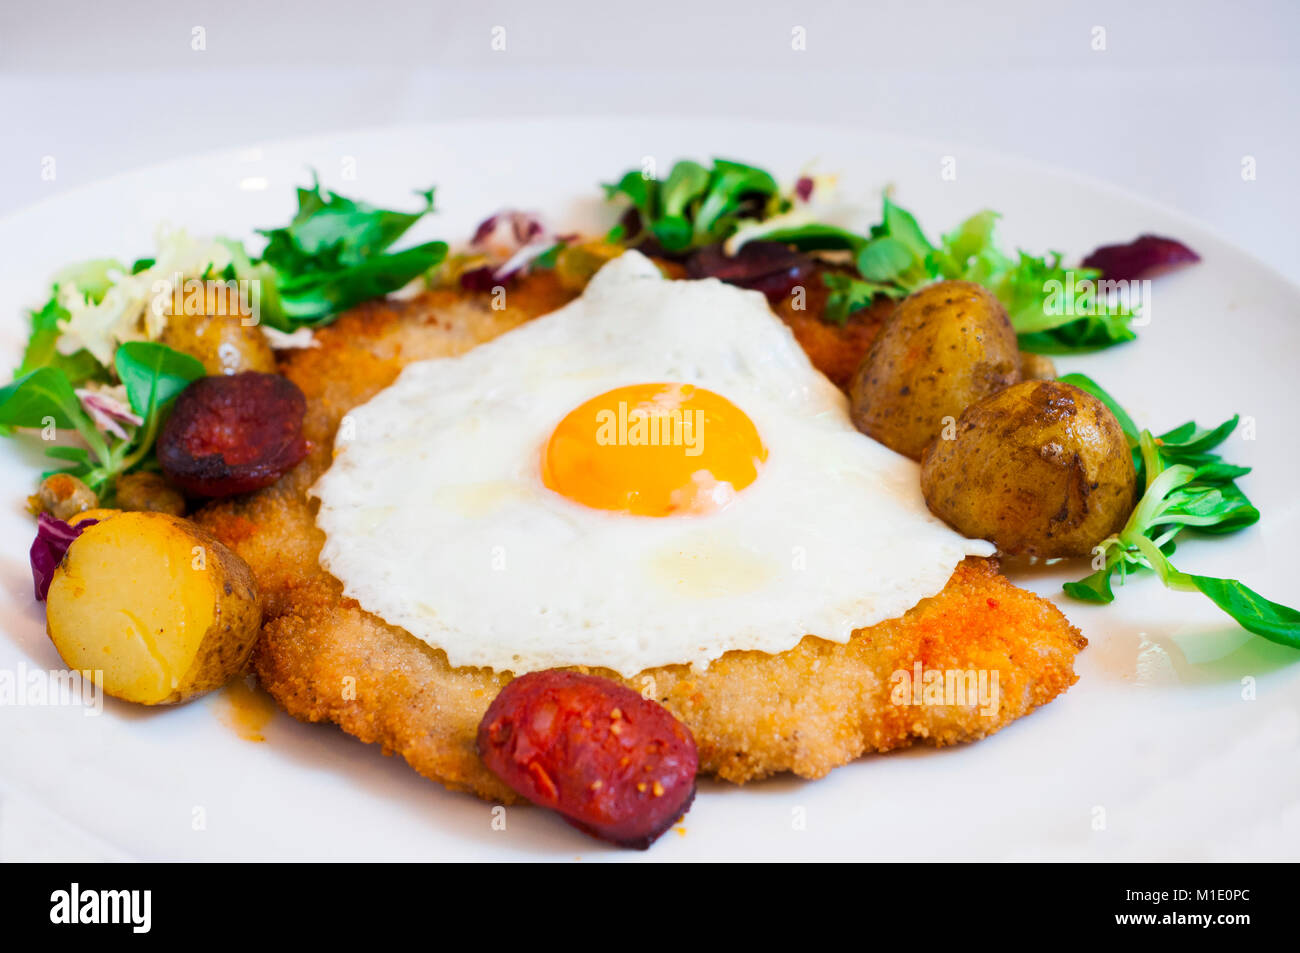 Schabowy. Breaded pork chop with fried egg and roast potatoes - Stock Image